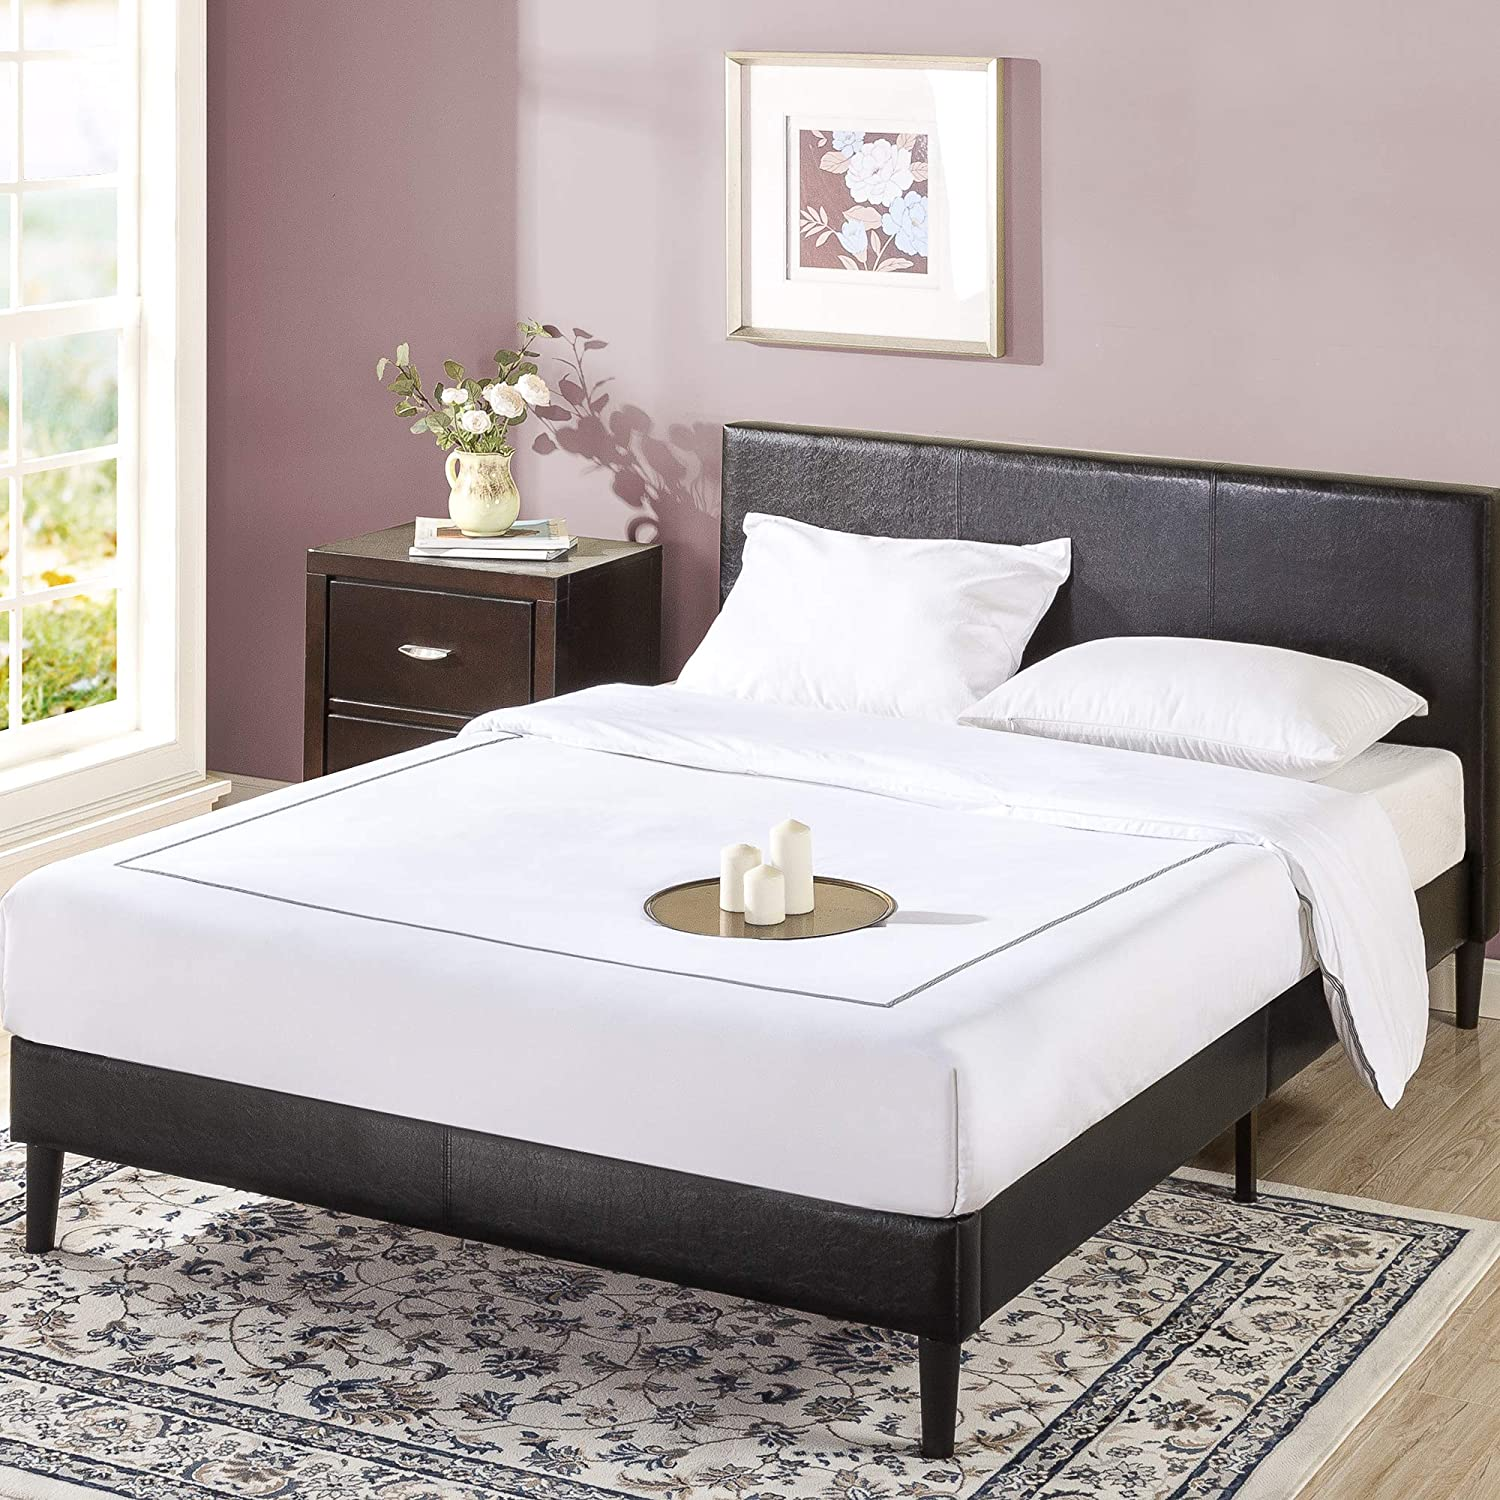 Max 79% OFF ZINUS Jade NEW Faux Leather Upholstered Platform Frame Bed Shor with